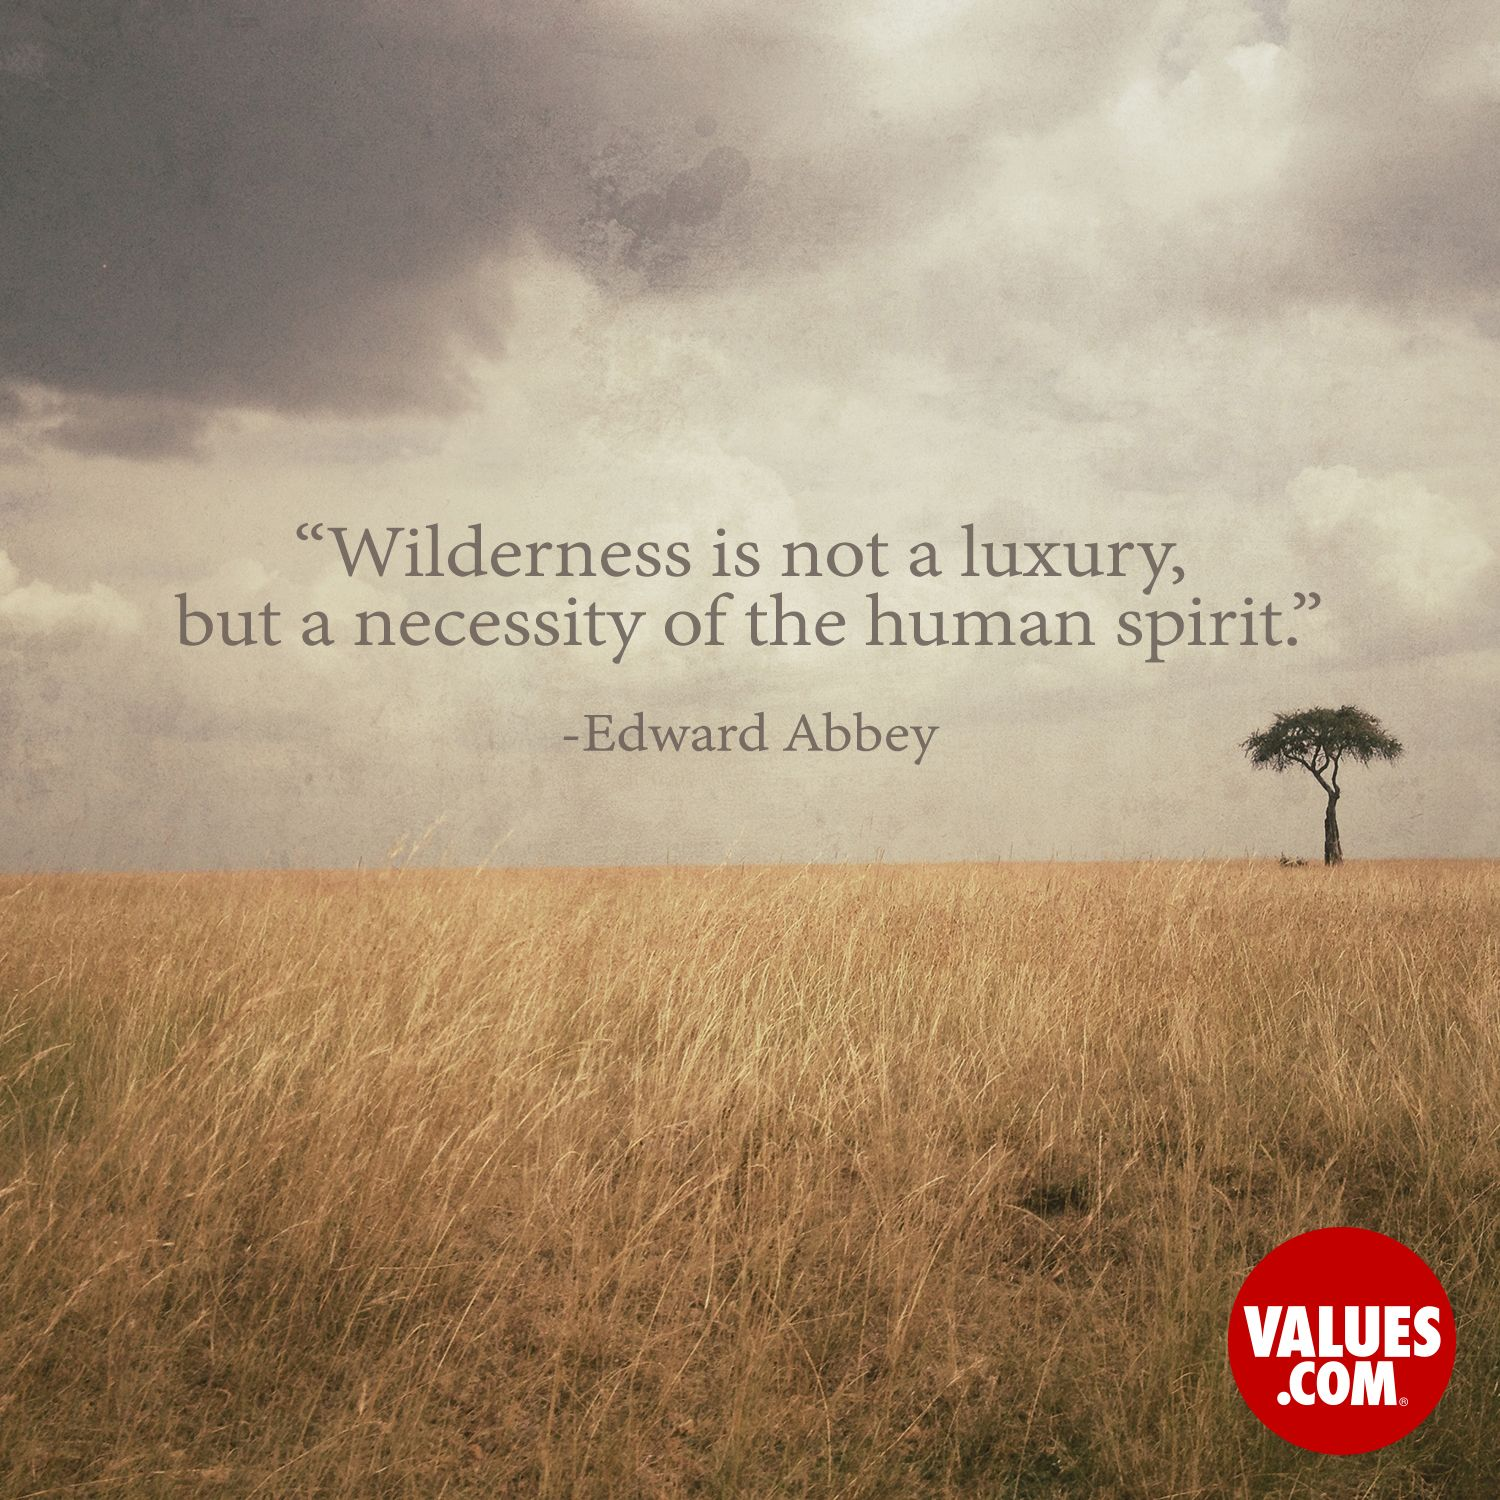 Quotes About Appreciating Life An Inspirational Quoteedward Abbey From Values  Words